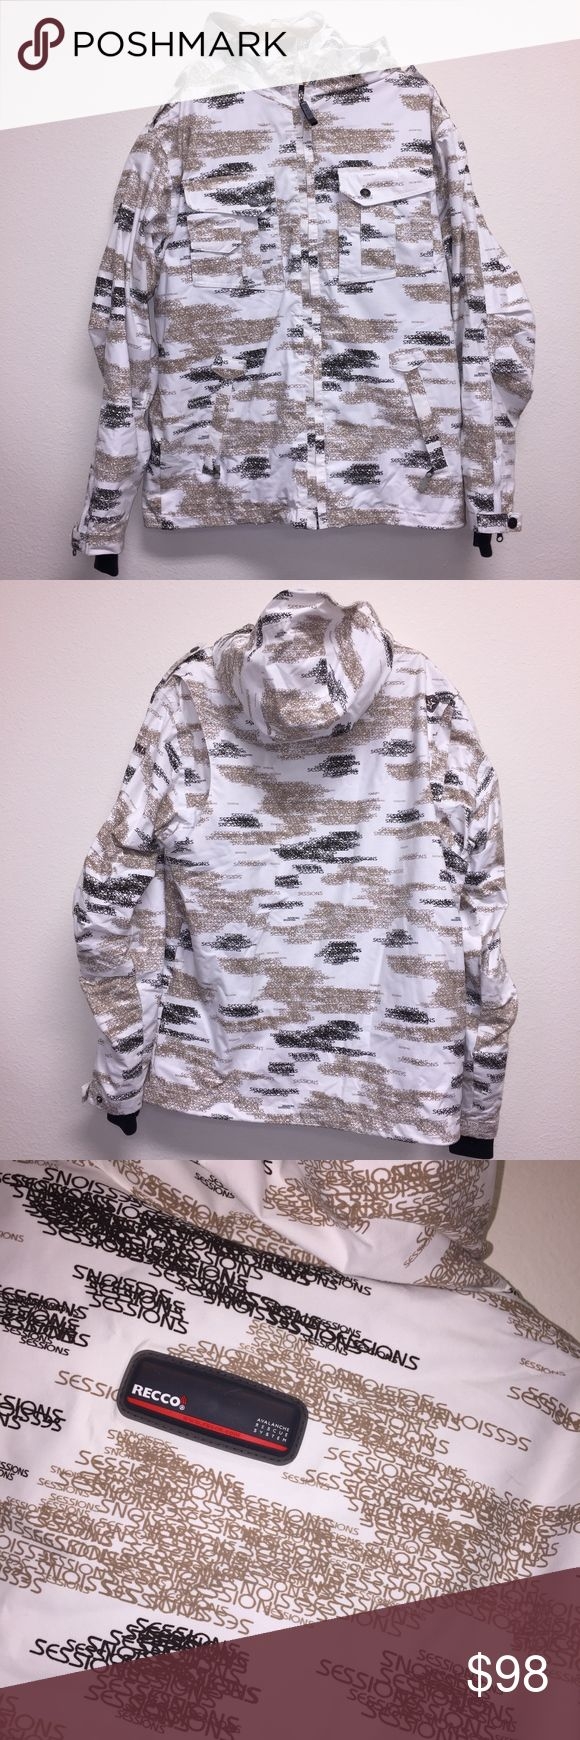 "Sessions Mens Snowboard Jacket Recco Camo-ish pattern. Item in great condition! Worn minimally. Size M. Has avalanche reflective technology. White, tan, and brown. Armpit: 25"". Length: 30"".  Feel free to ask any questions. No trades/model photos sorry. Offers thru offer button only. Items ship same day, M-F if purchased before 2pm PST! :) x. SESSIONS Jackets & Coats Ski & Snowboard"